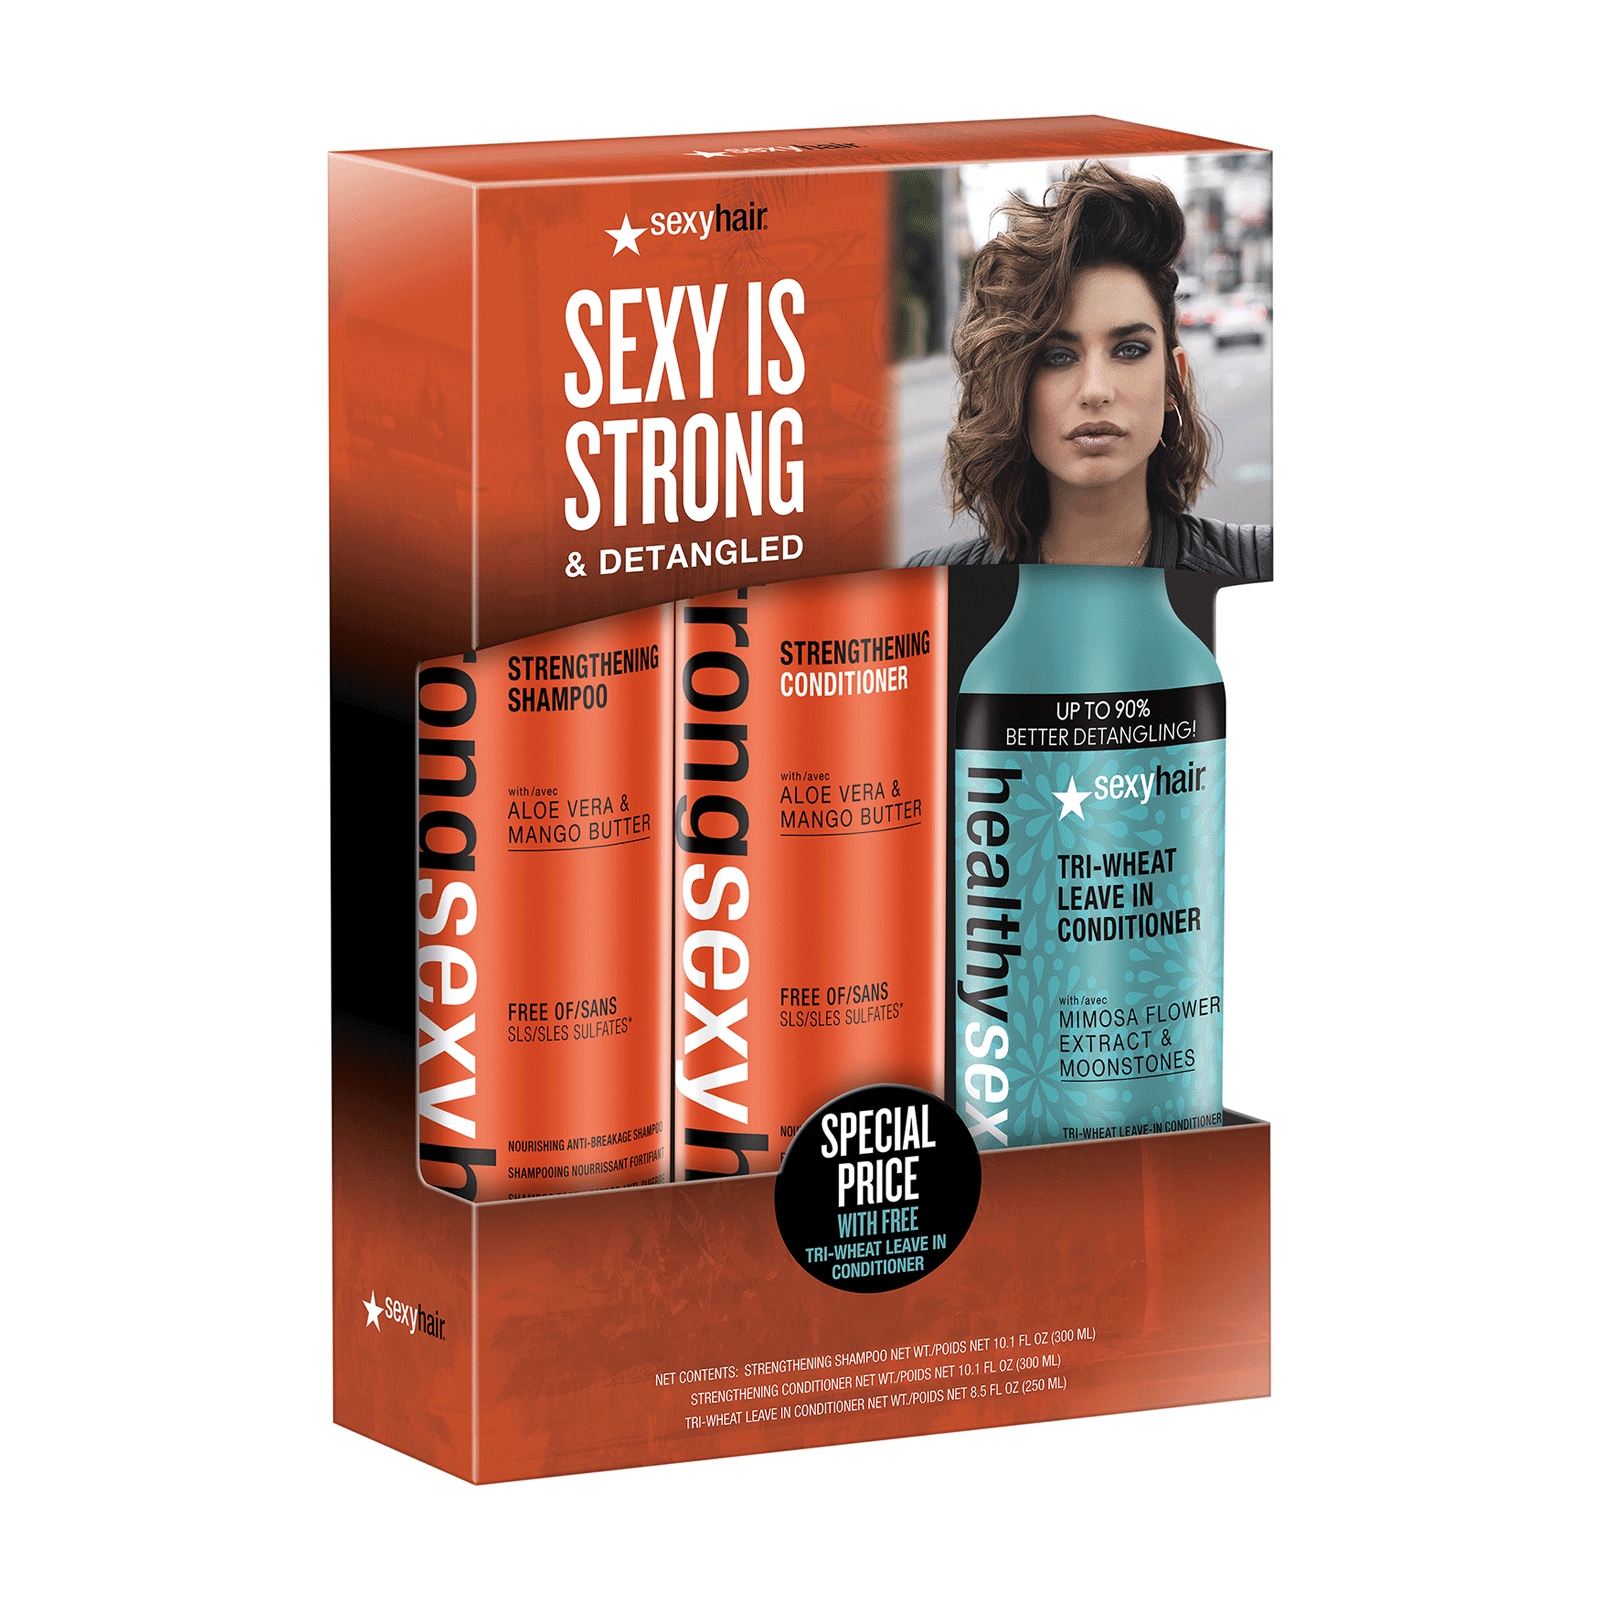 Strong Sexy Hair Shampoo, Conditioner, Triple-Wheat Leave-In